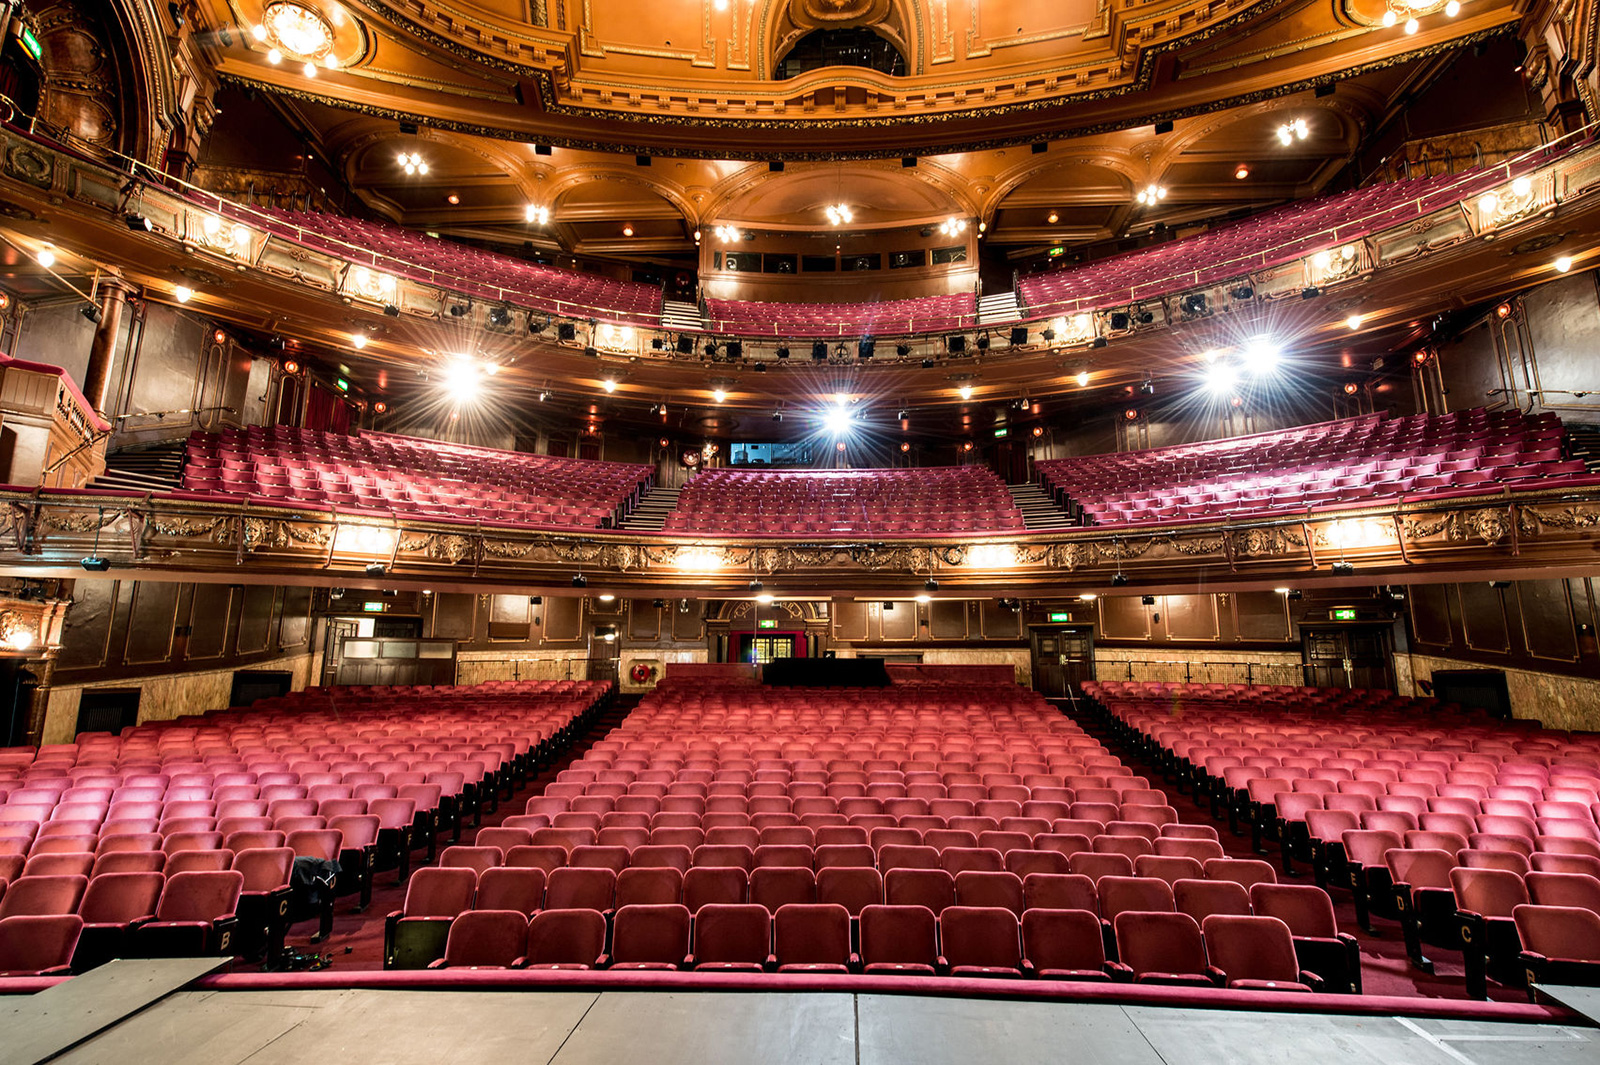 Interior of London's Palladium